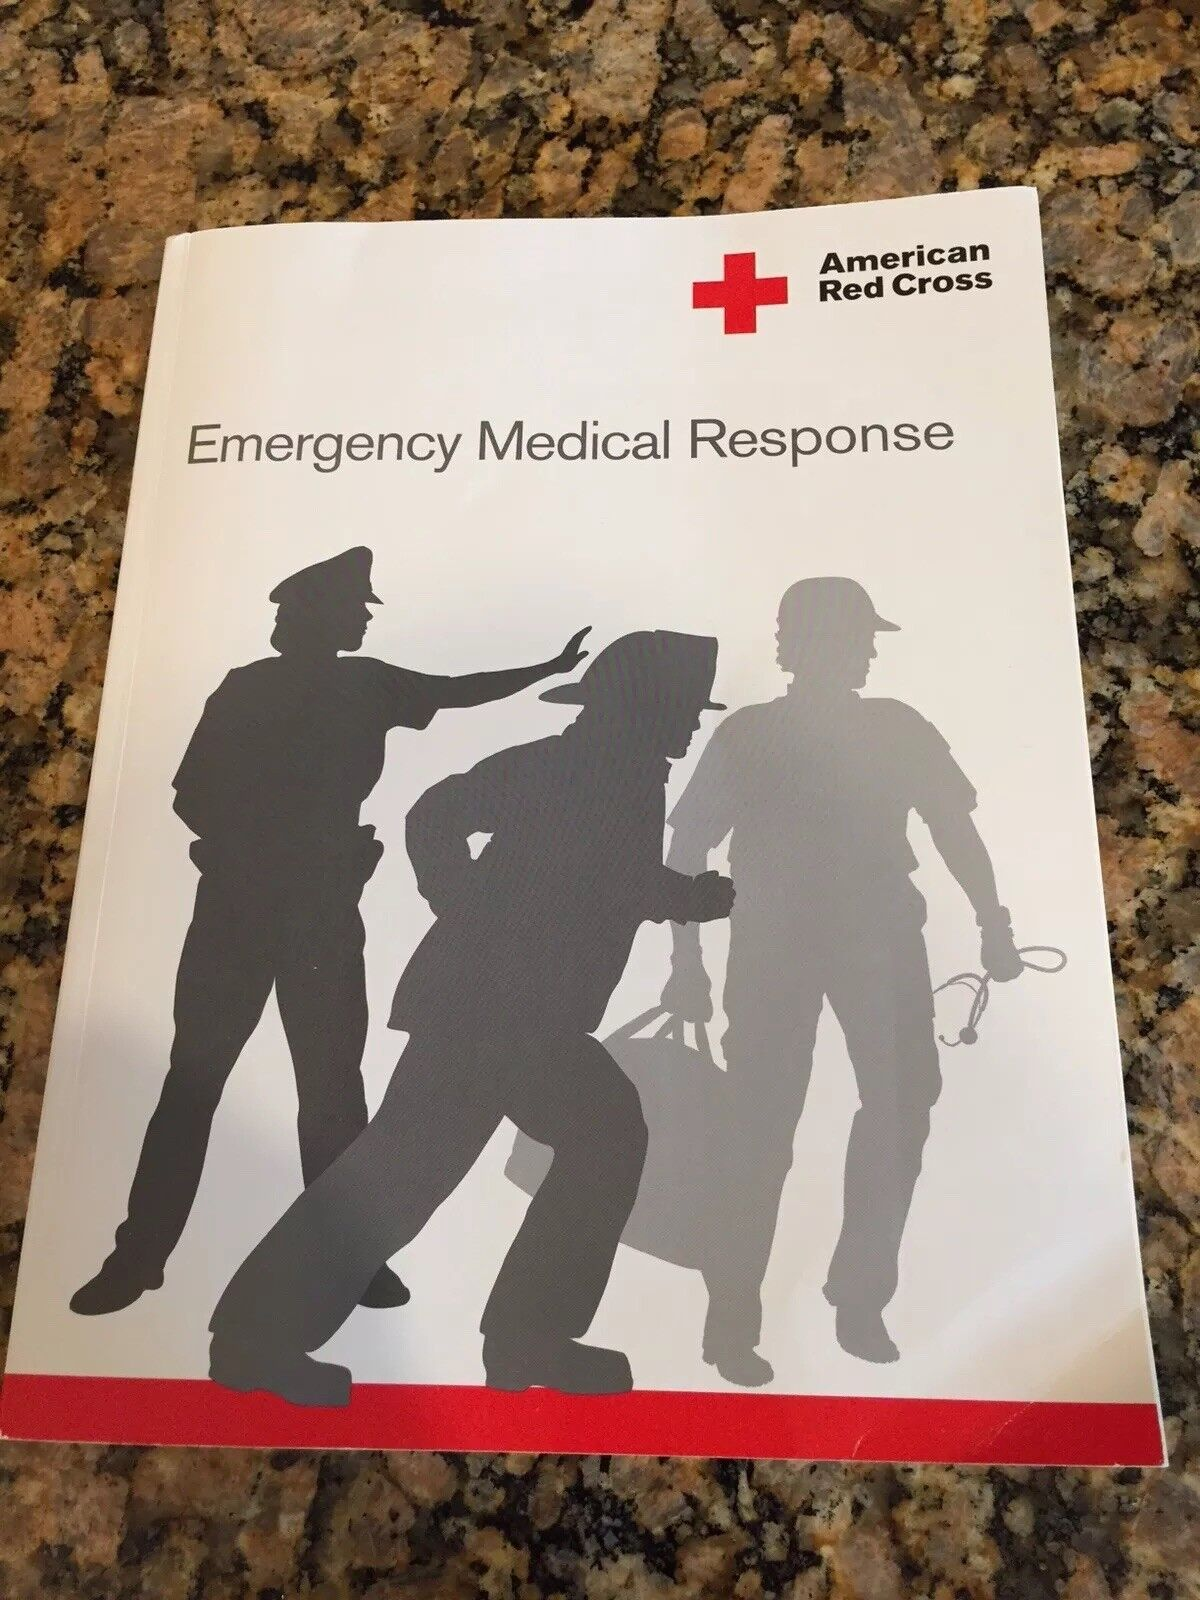 6fb3100d2190 ... ISBN 9781584803270 product image for American Red Cross Emergency  Medical Response Participant s Manual